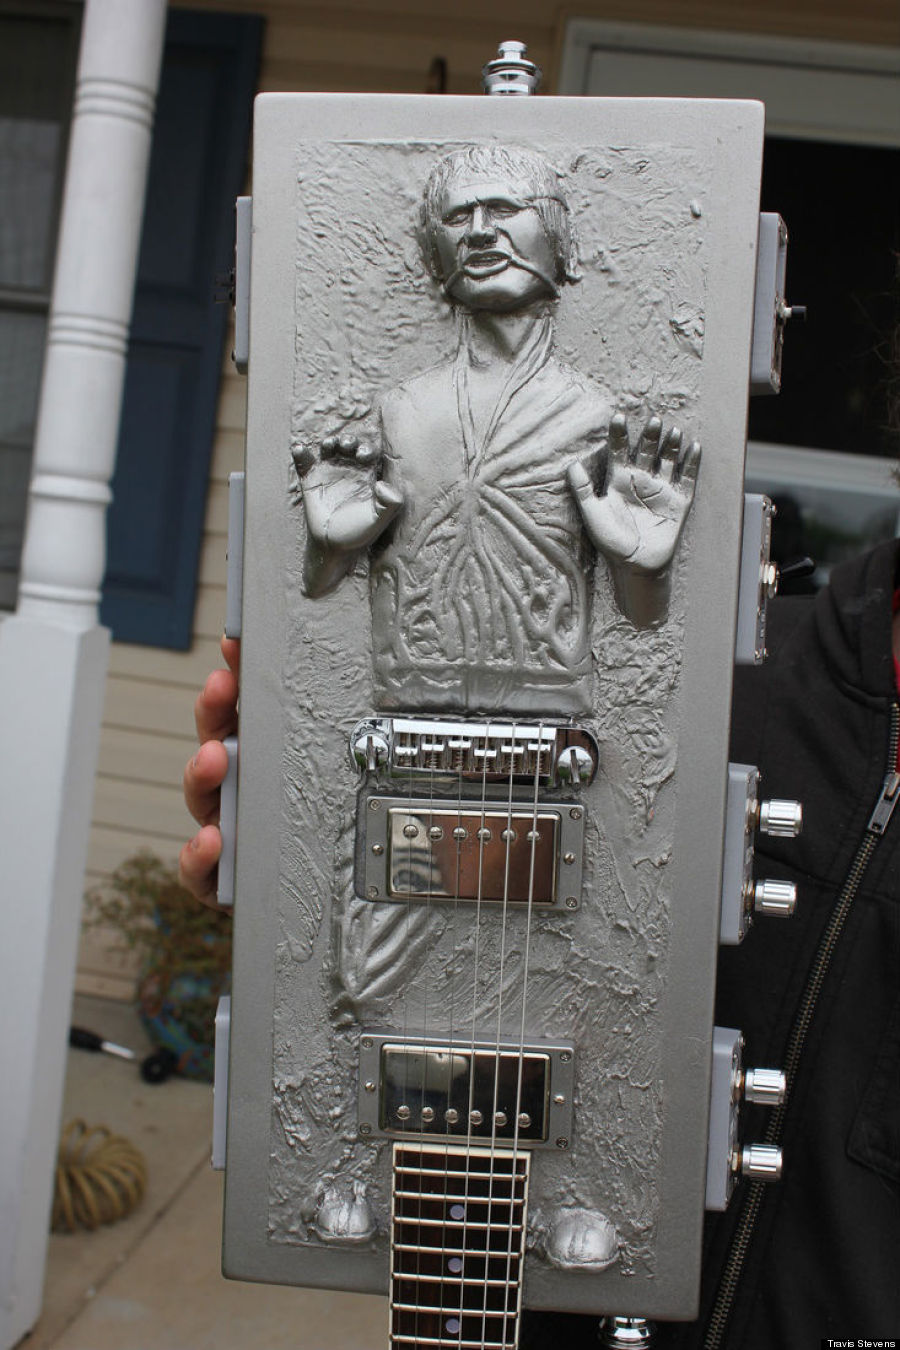 han carbonite guitar